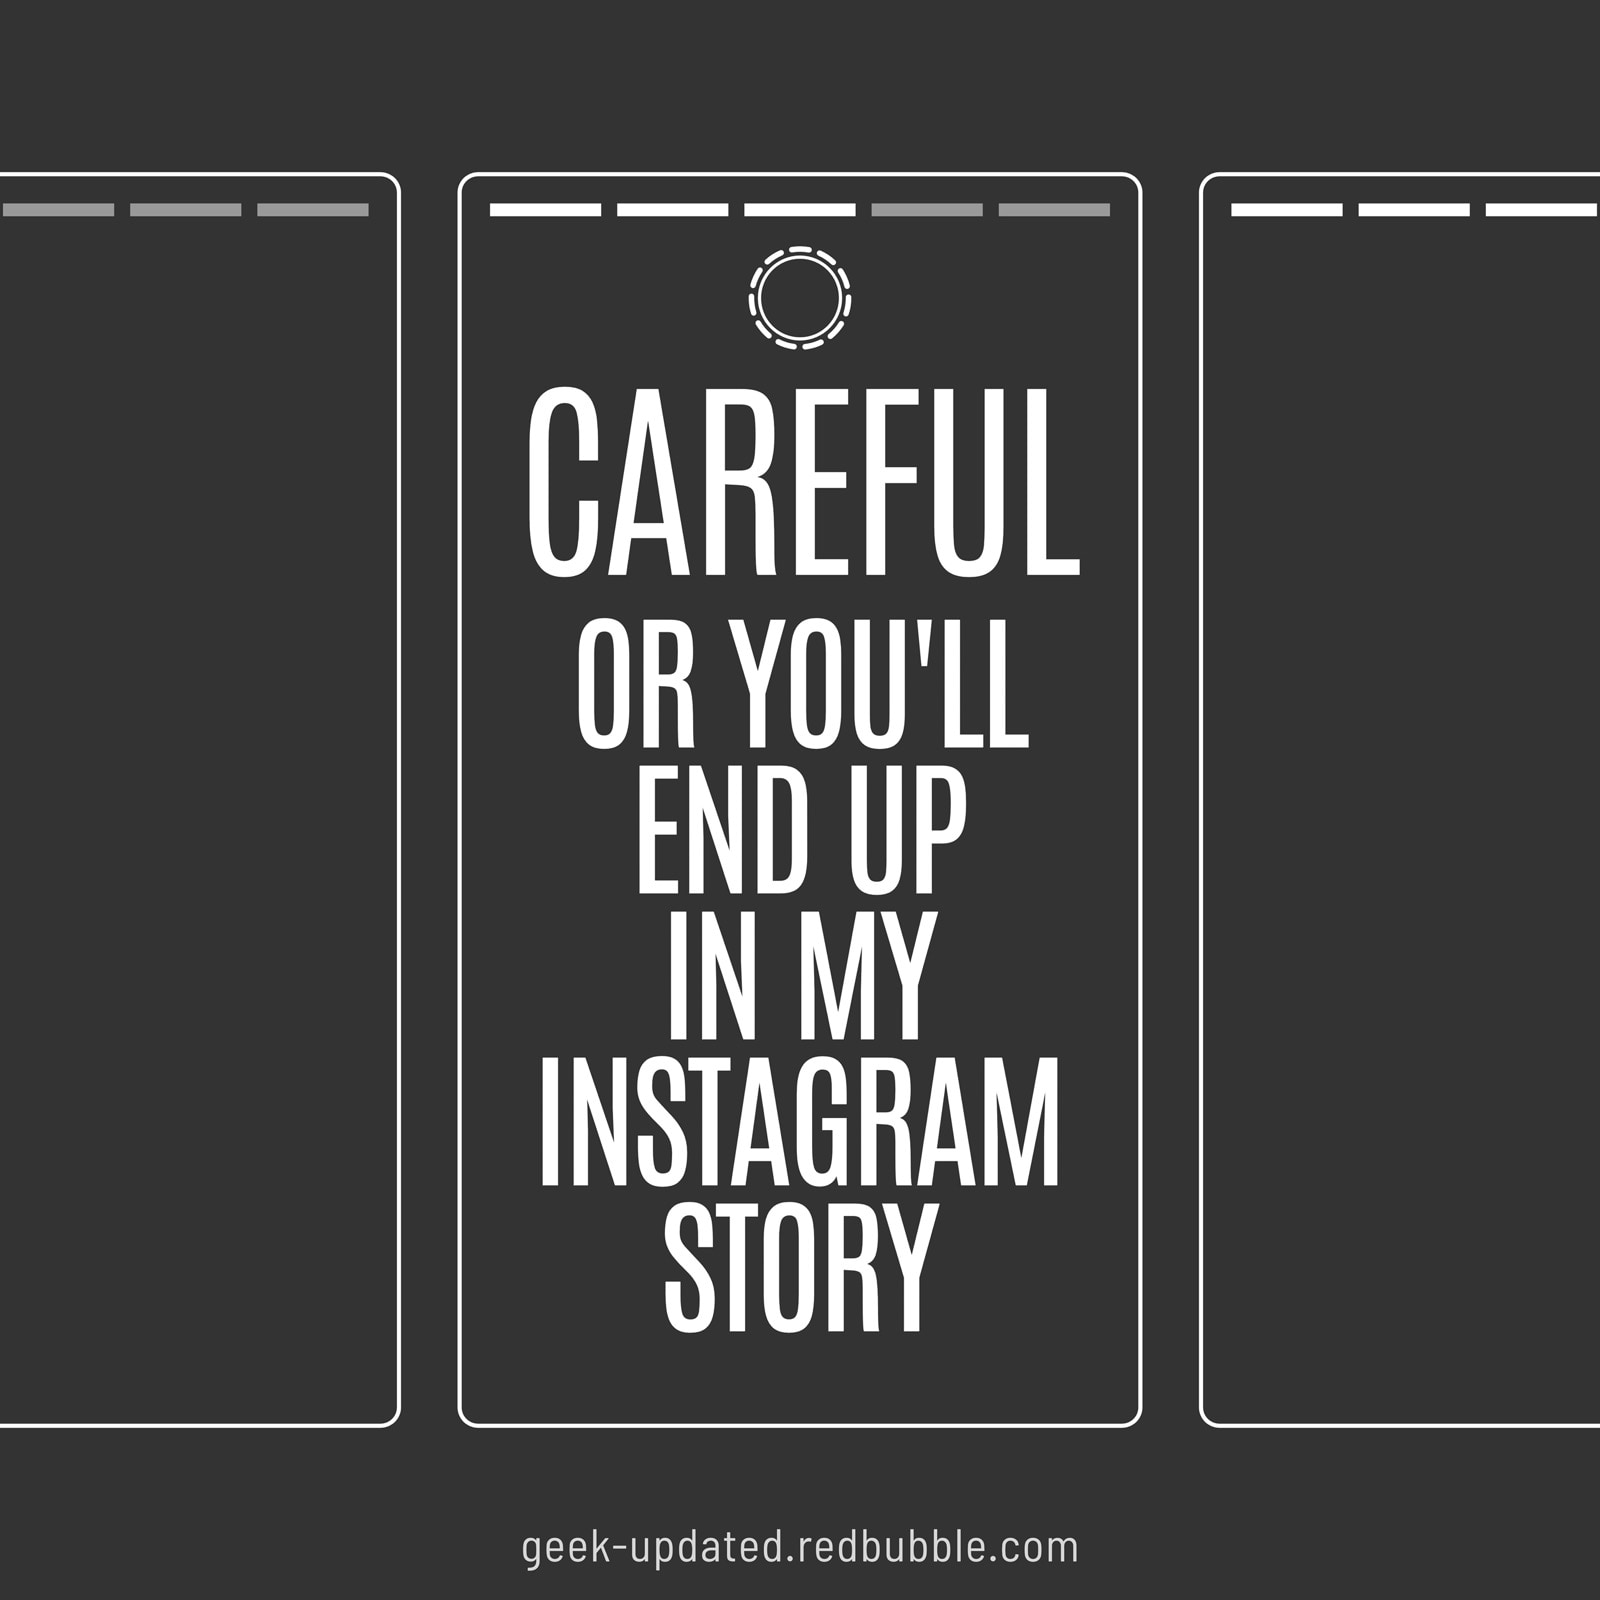 Careful or you'll end up in my Instagram story - design by Piotr Kowalczyk